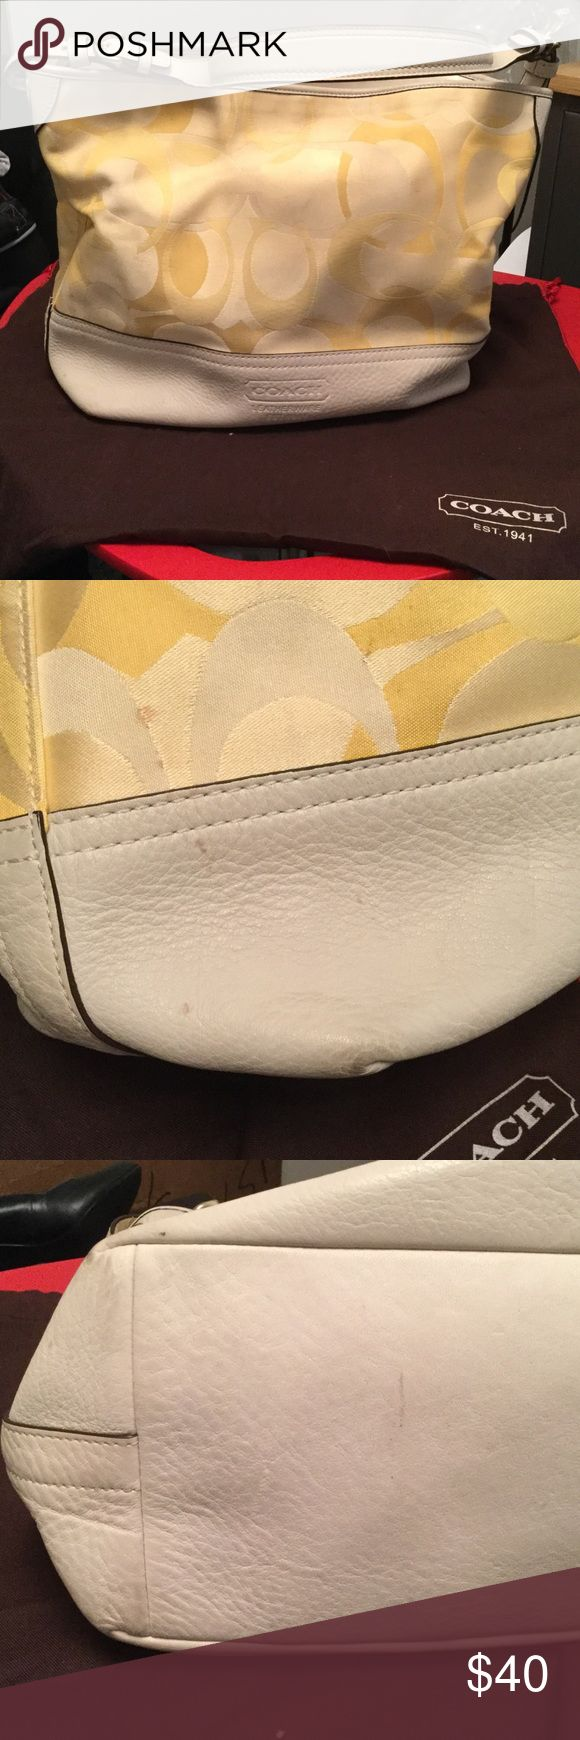 Coach Hobo Bag | Used This cream and light gold Coach hobo bag has leather straps and leather base. There are some spots on it which I've tried to capture in the pictures. It comes with the dust bag. Coach Bags Hobos